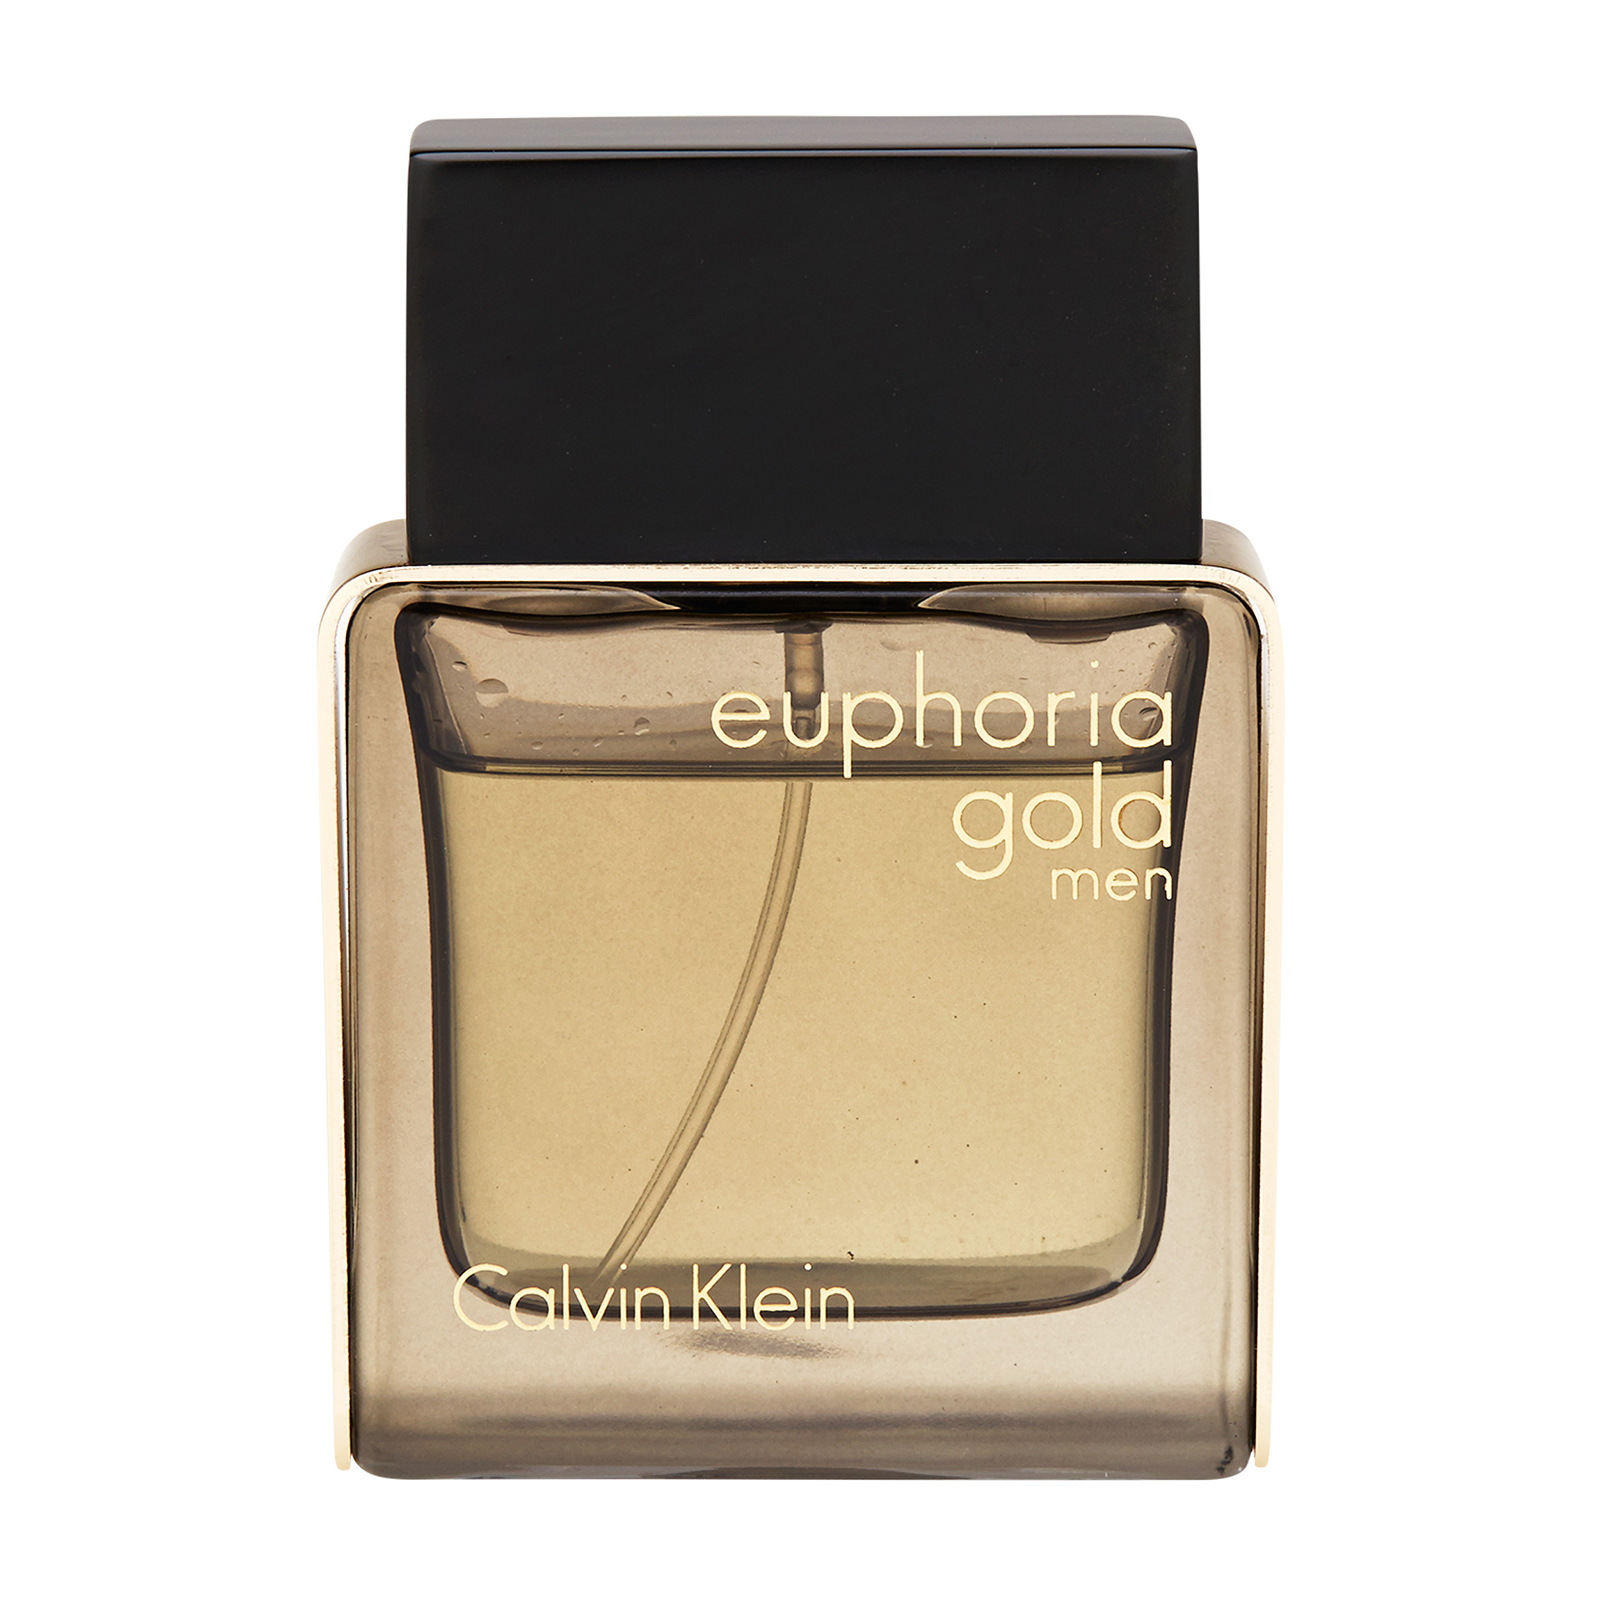 Calvin Klein Euphoria Gold Men EDT Spray (Limited Edition) 1oz, 30ml